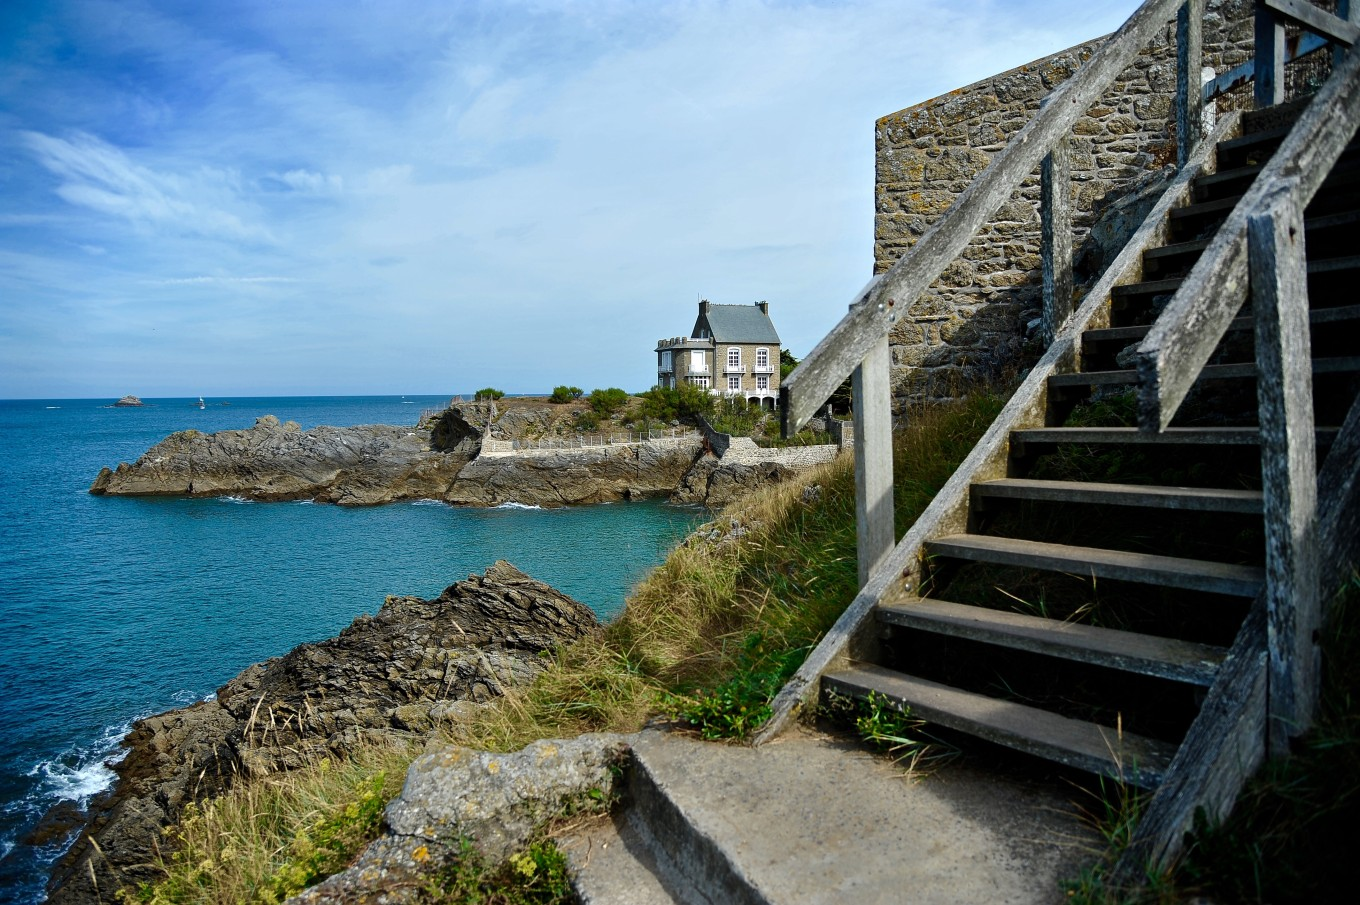 Couleurs de Bretagne, Pointe de la Varde, France